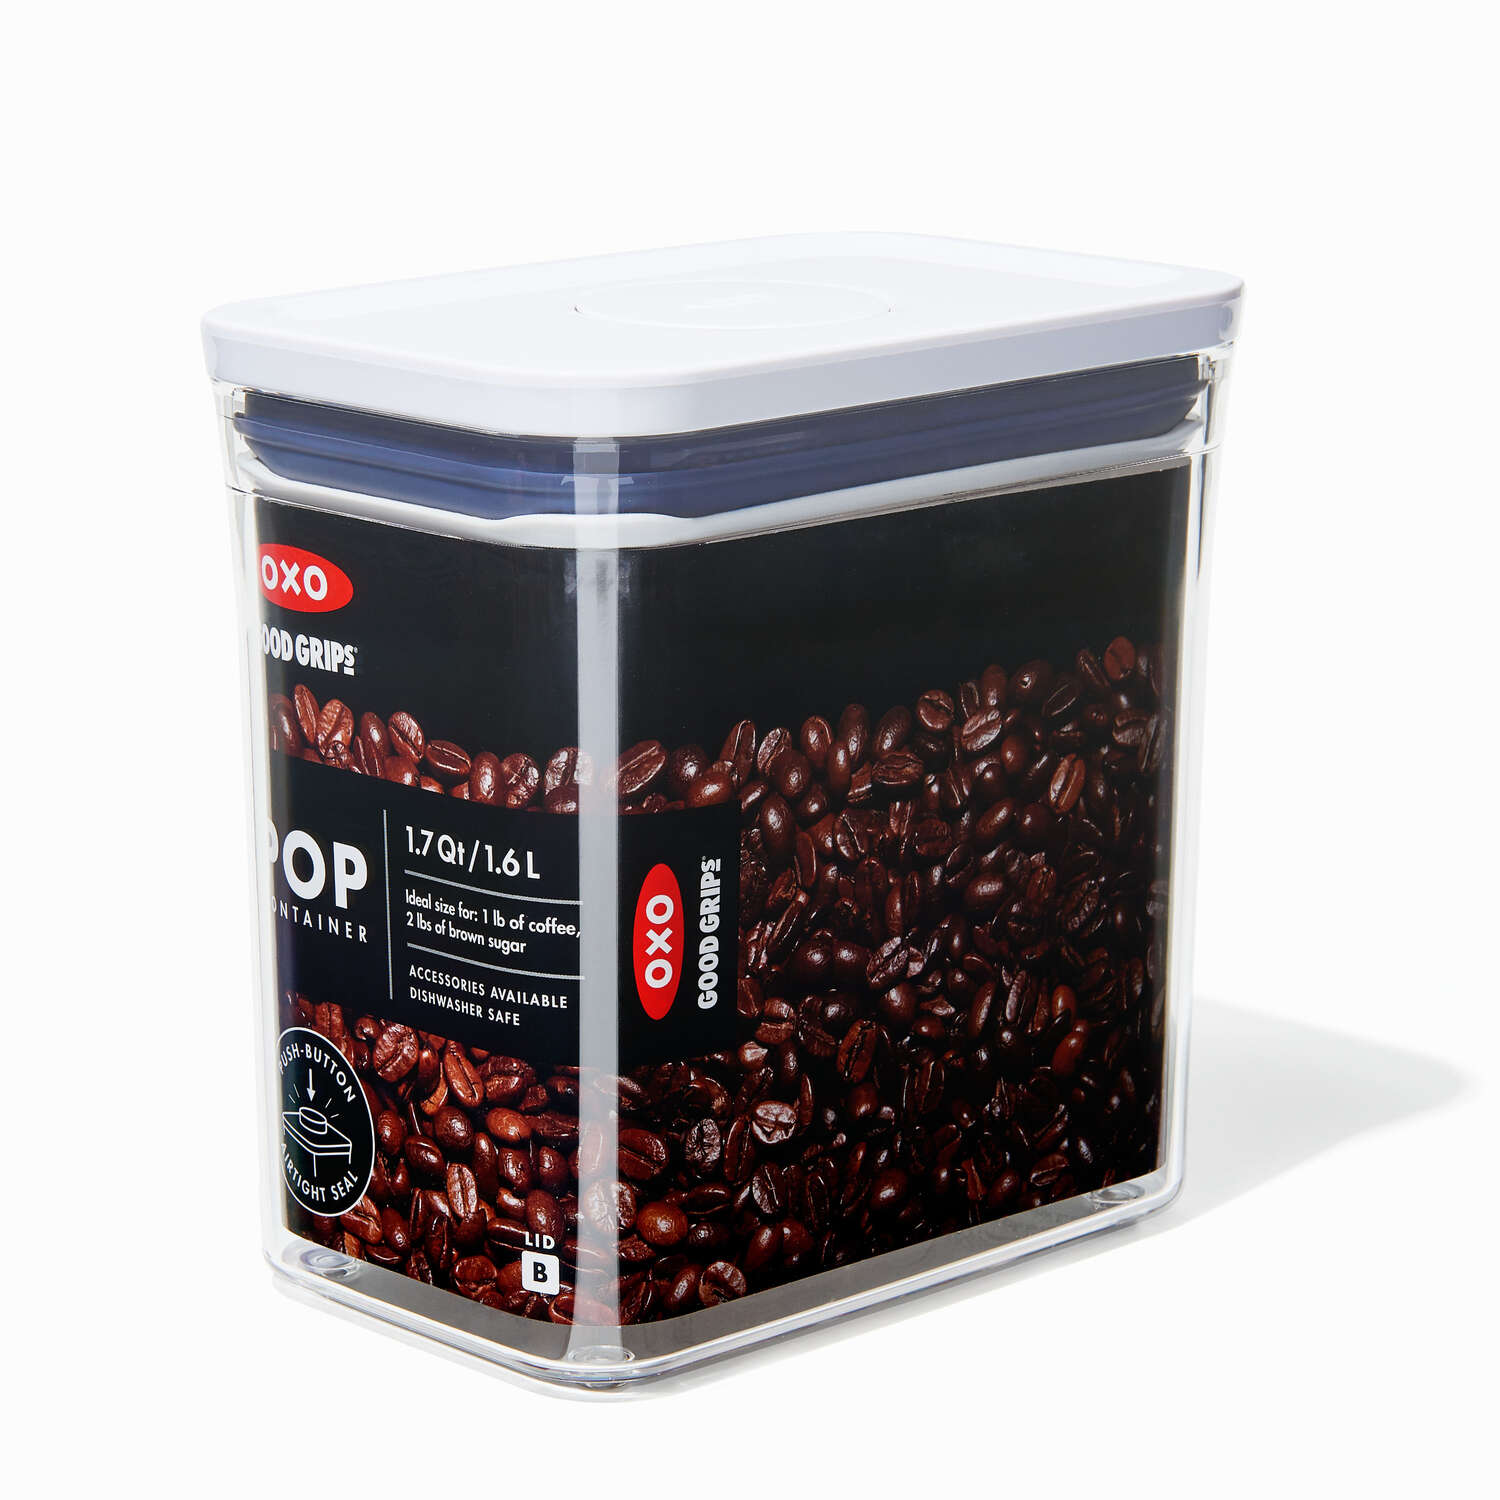 OXO Good Grips 1.7 qt. Clear Pop Container 1 pk